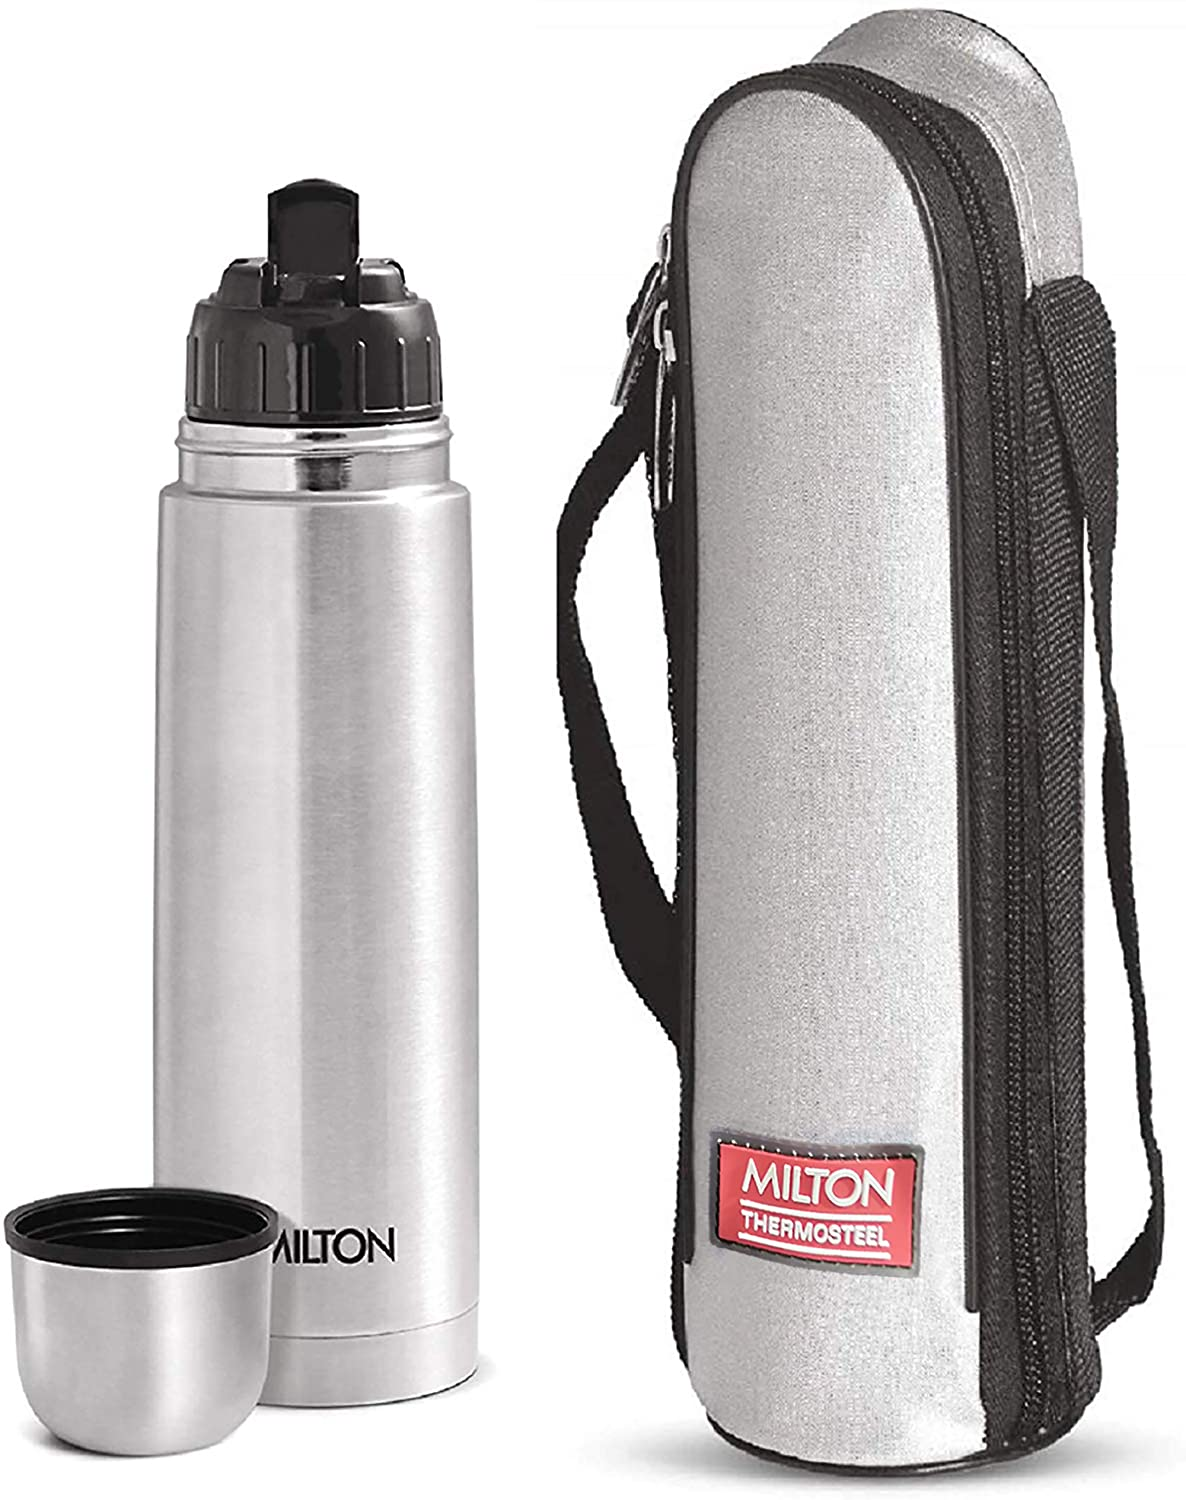 Up to 60% off Water bottles & Flasks at Amazon